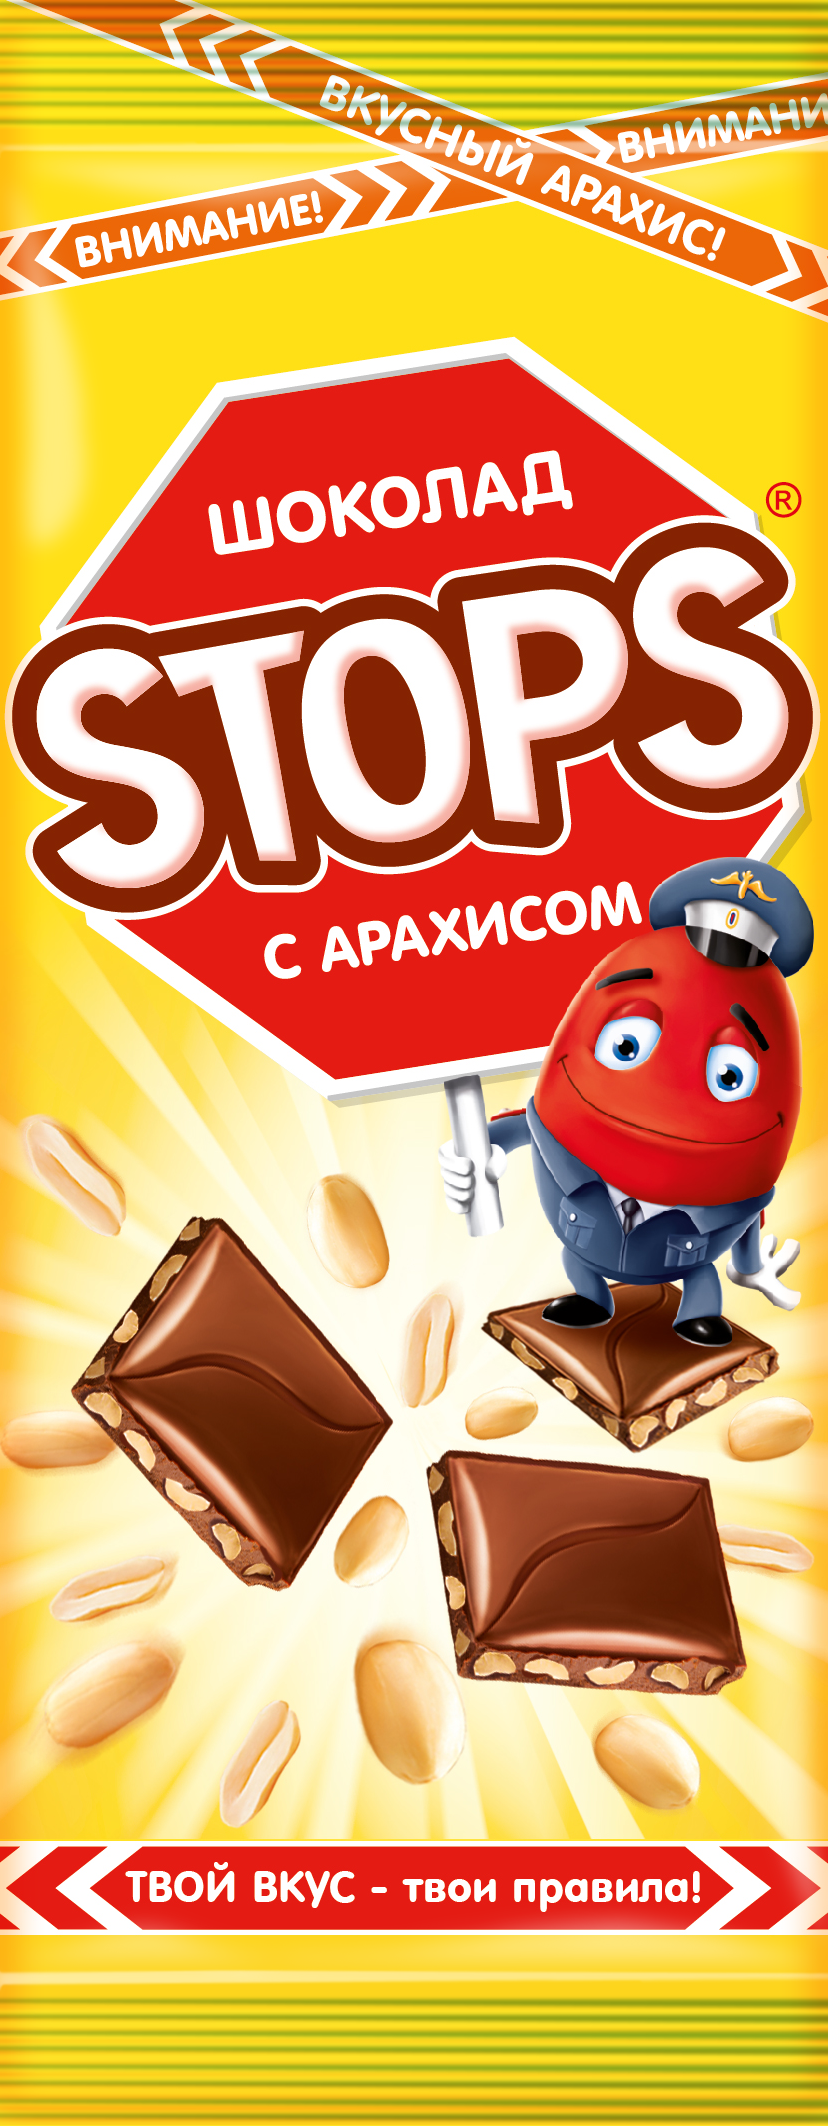 STOPs3.png